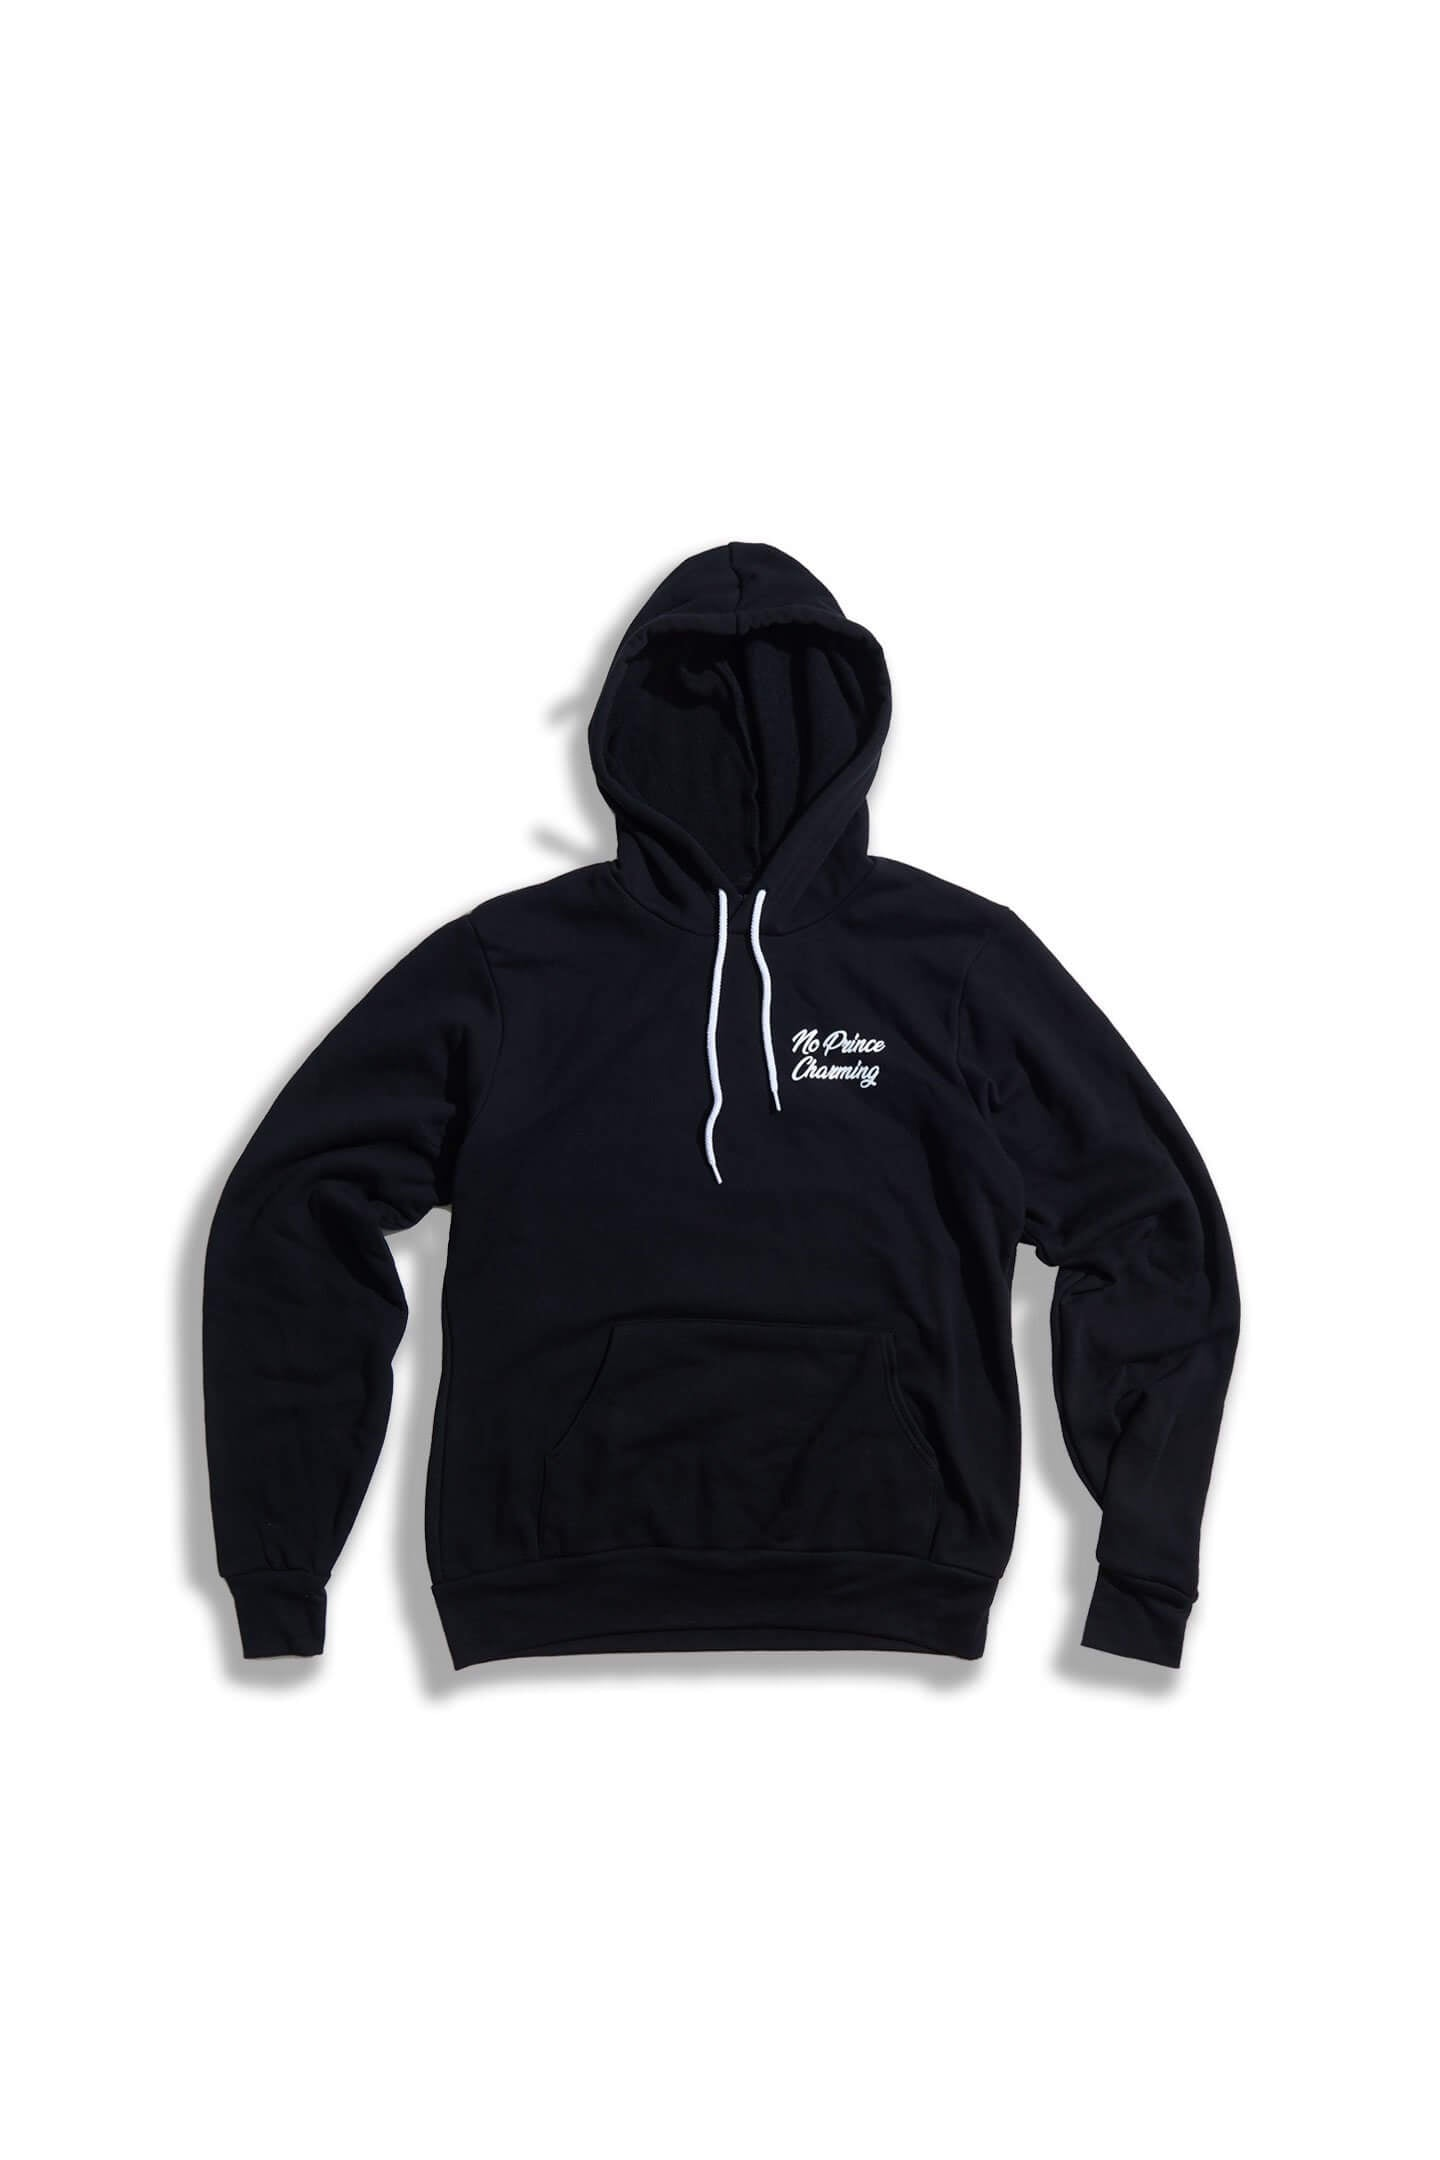 A BEAUTY AND A BEAST FULL LENGTH HOODIE - BLACK